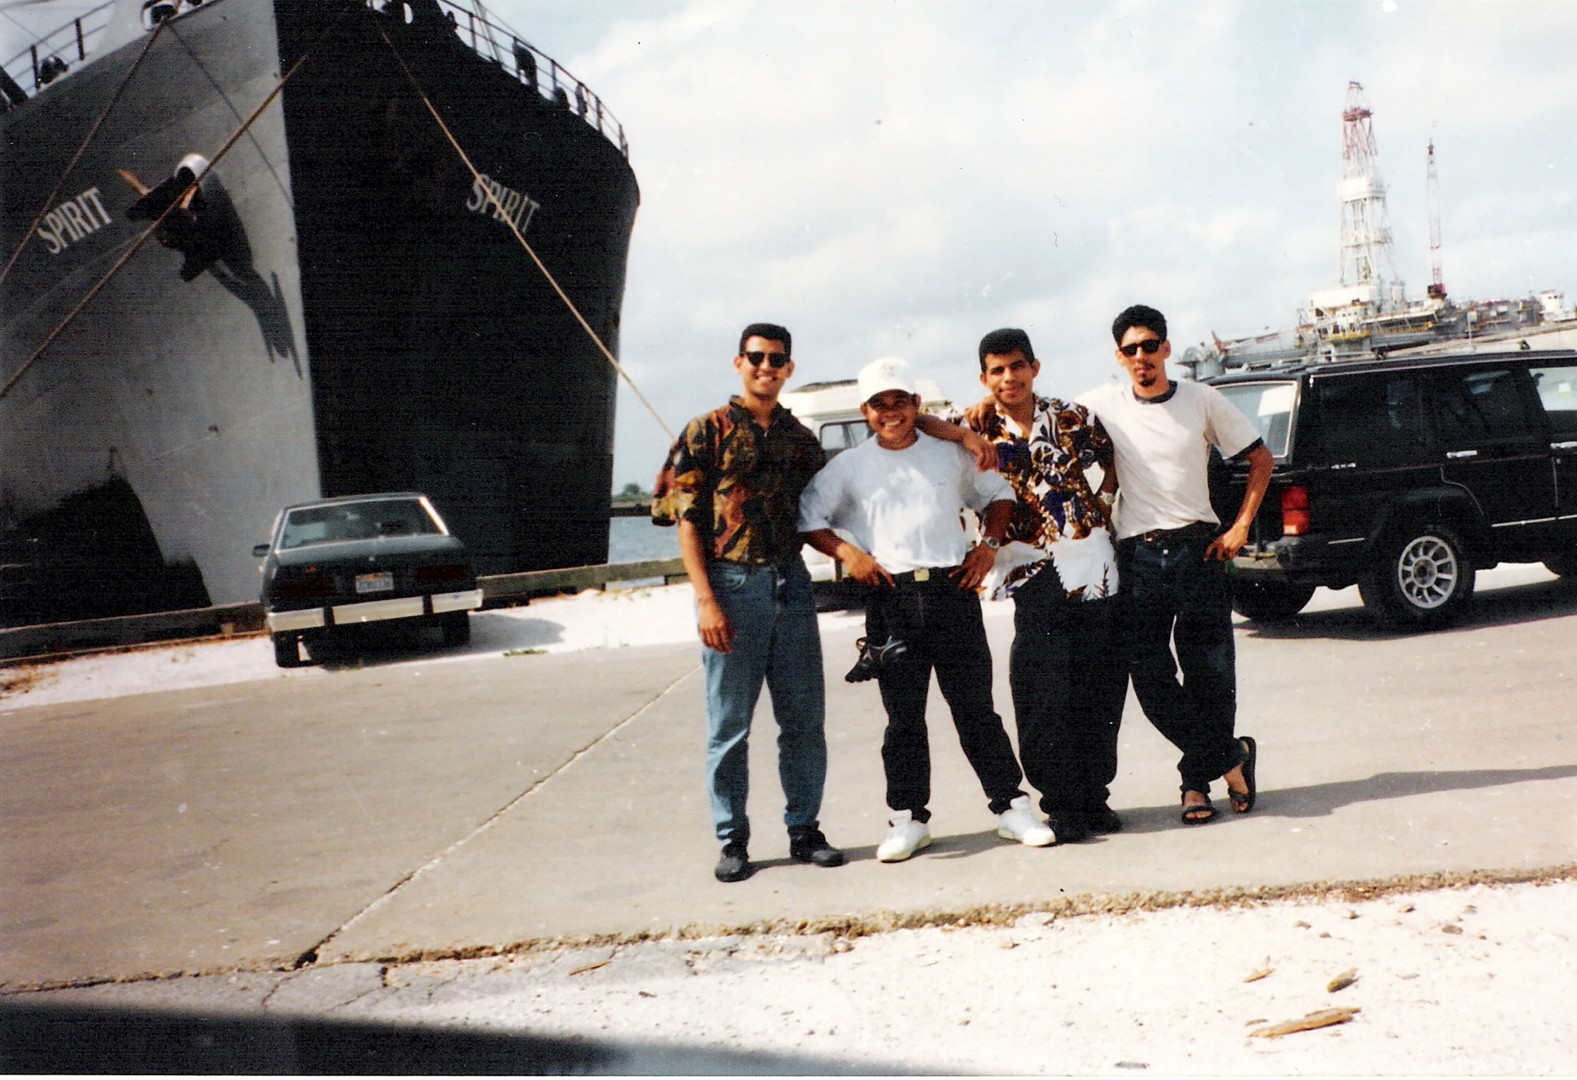 Oscar, Fermin, Alex, and Victor in front of the Spirit ship